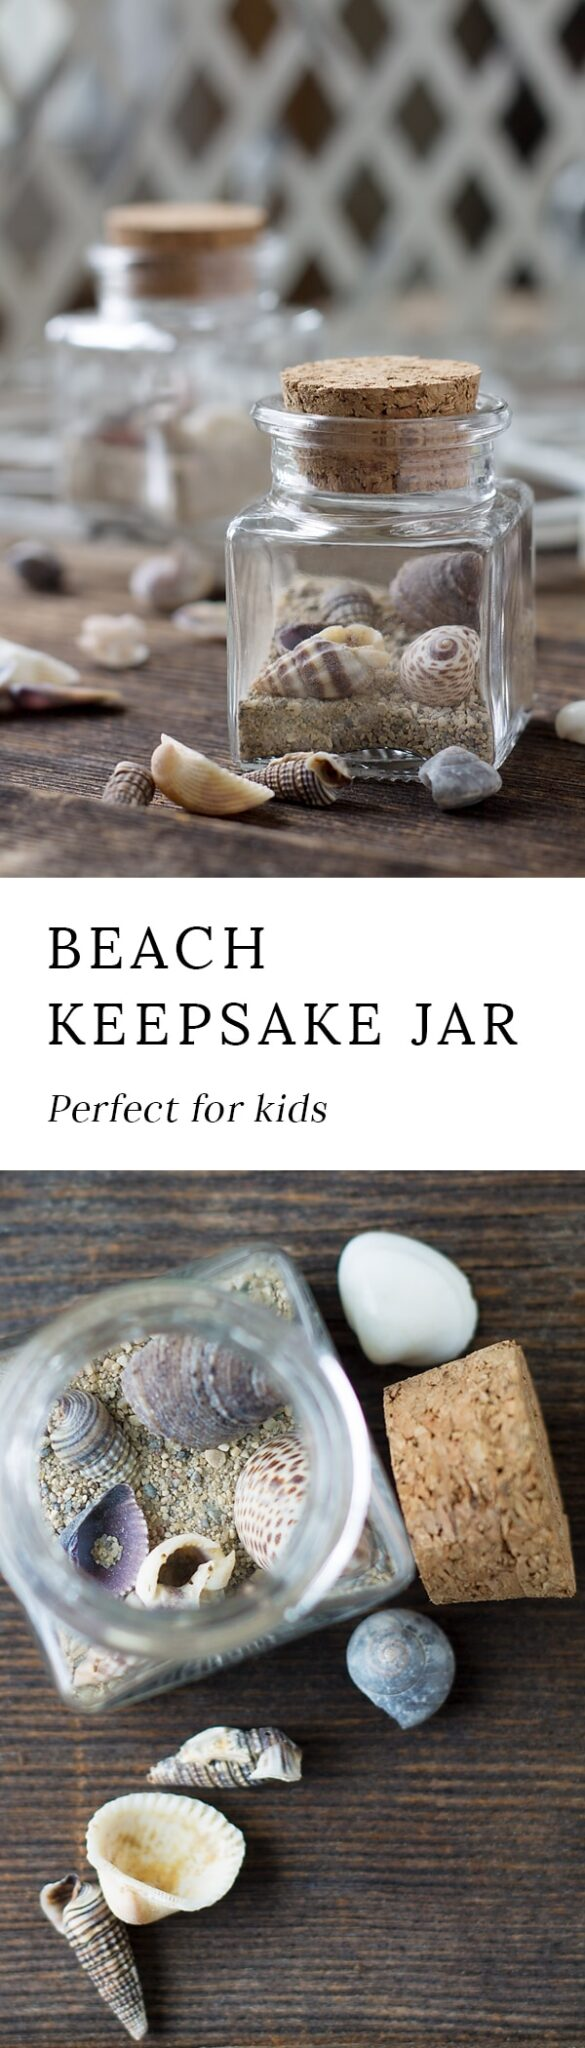 This Simple Beach Keepsake Craft is the perfect DIY souvenir for kids to remember their special seaside adventure!